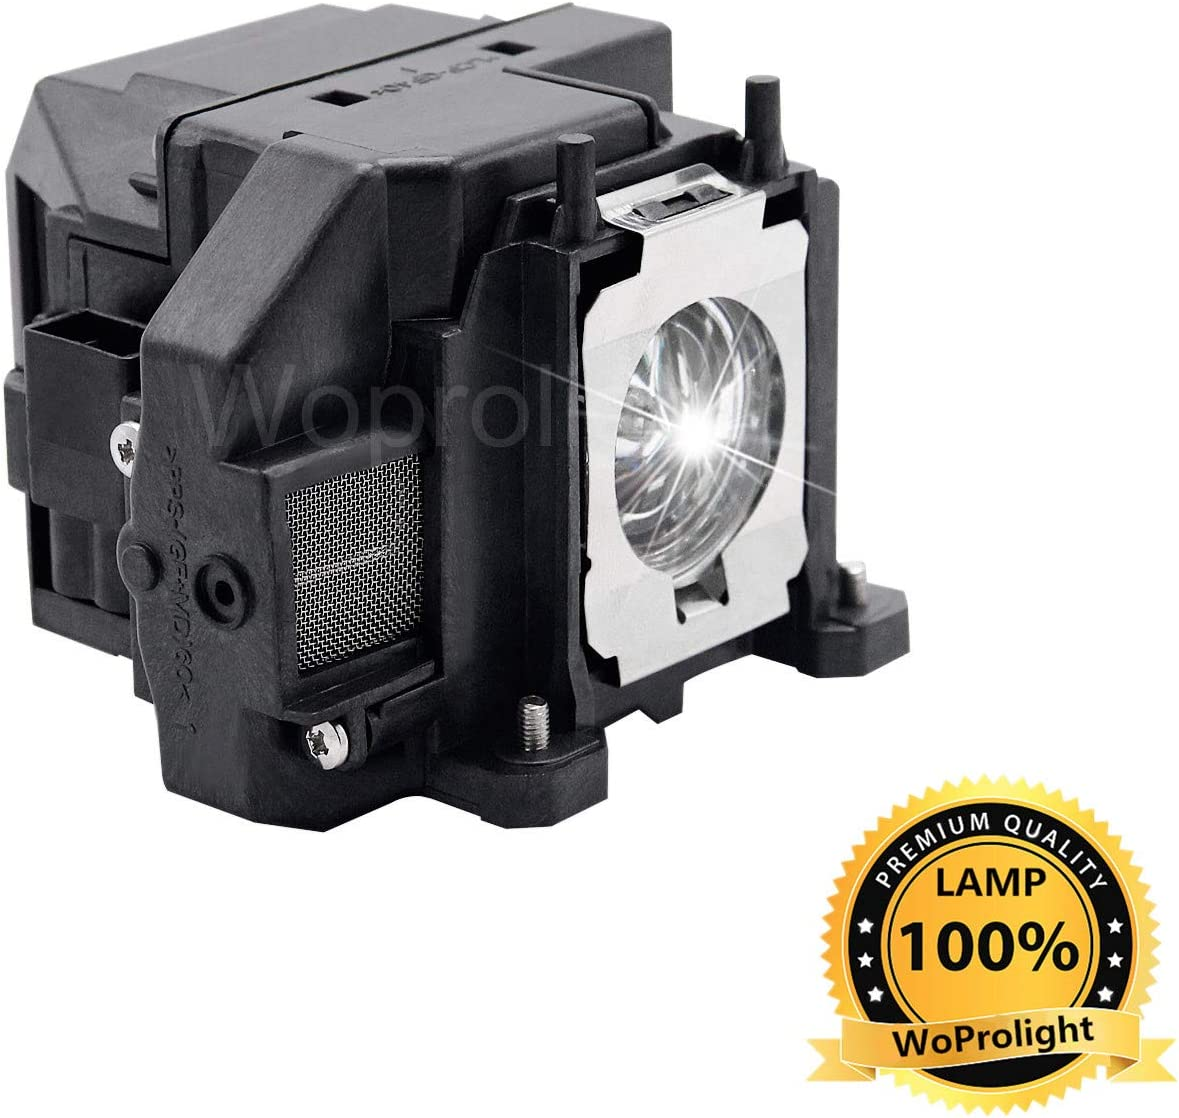 for Epson ELPLP67 Replacement Premium Quality Projector Lamp for Epson EB-W12 EB-X12 EB-S12 Projector by WoProlight